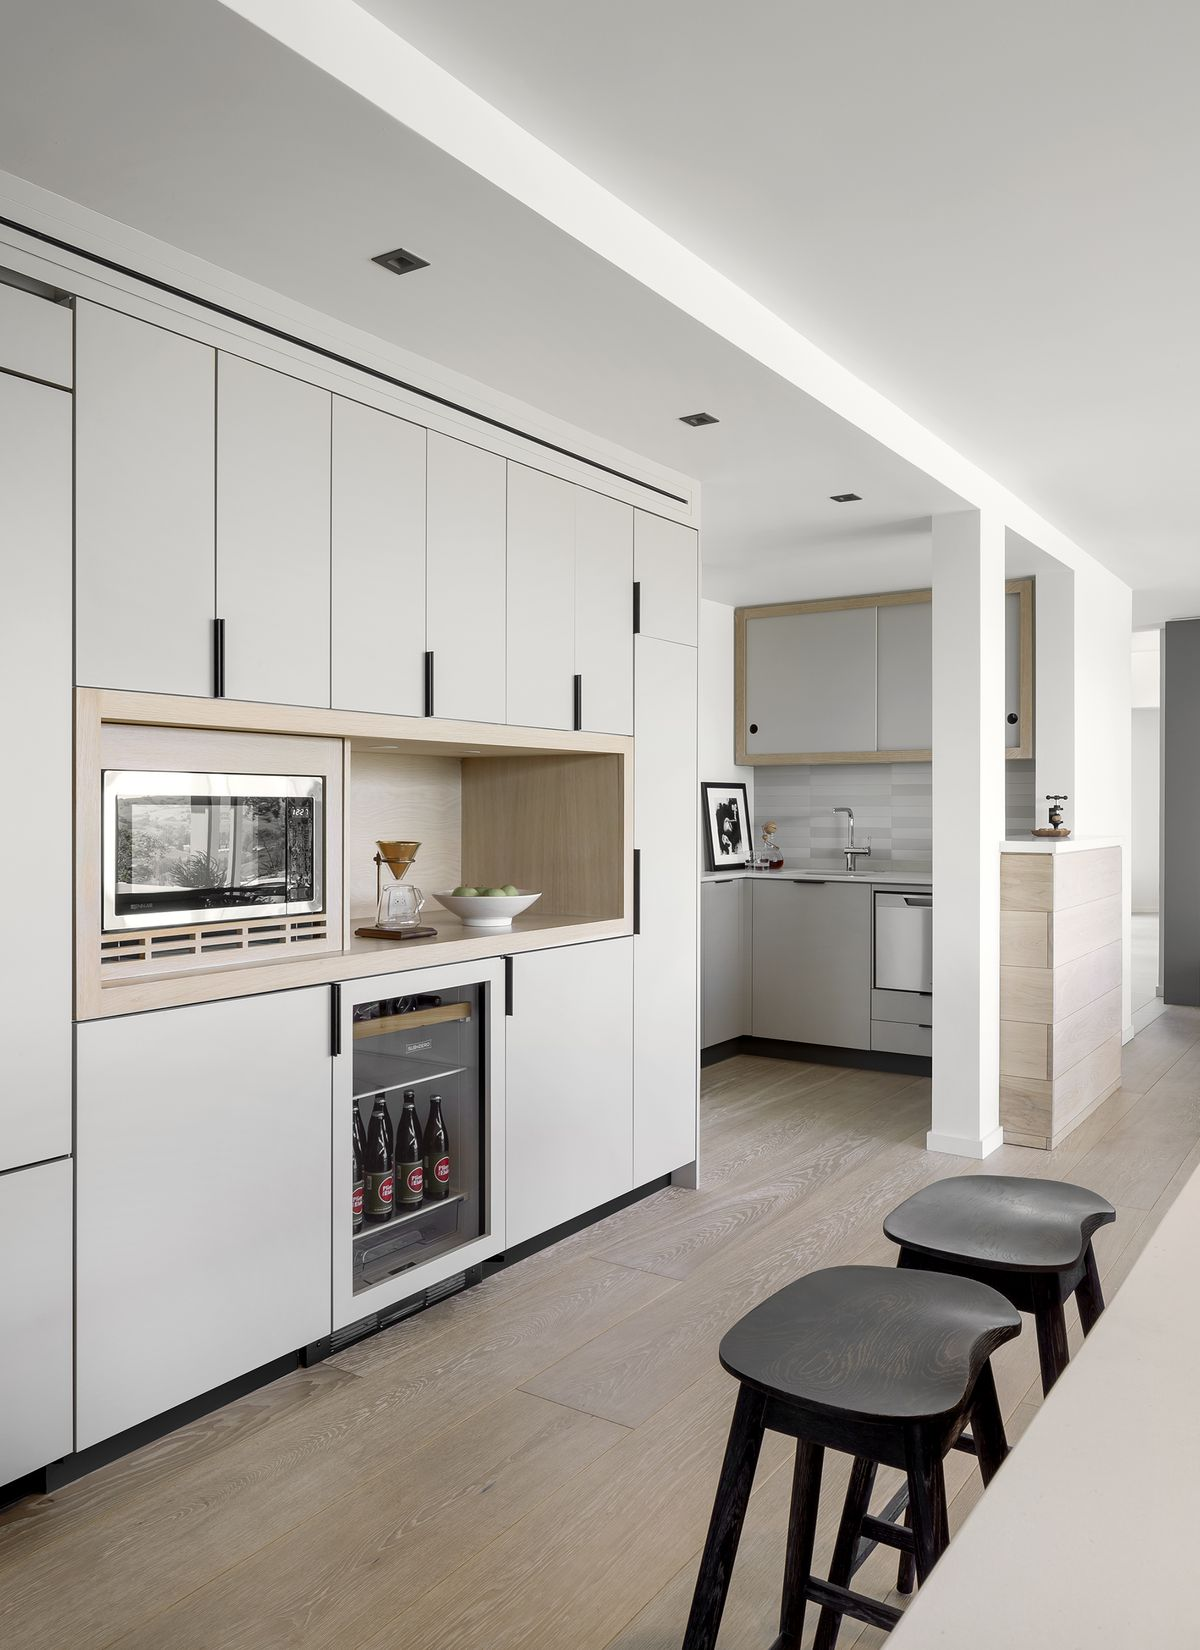 Kitchen white white cabinets and built-in appliances. Two dark wood stools sit near a blonde wood table.